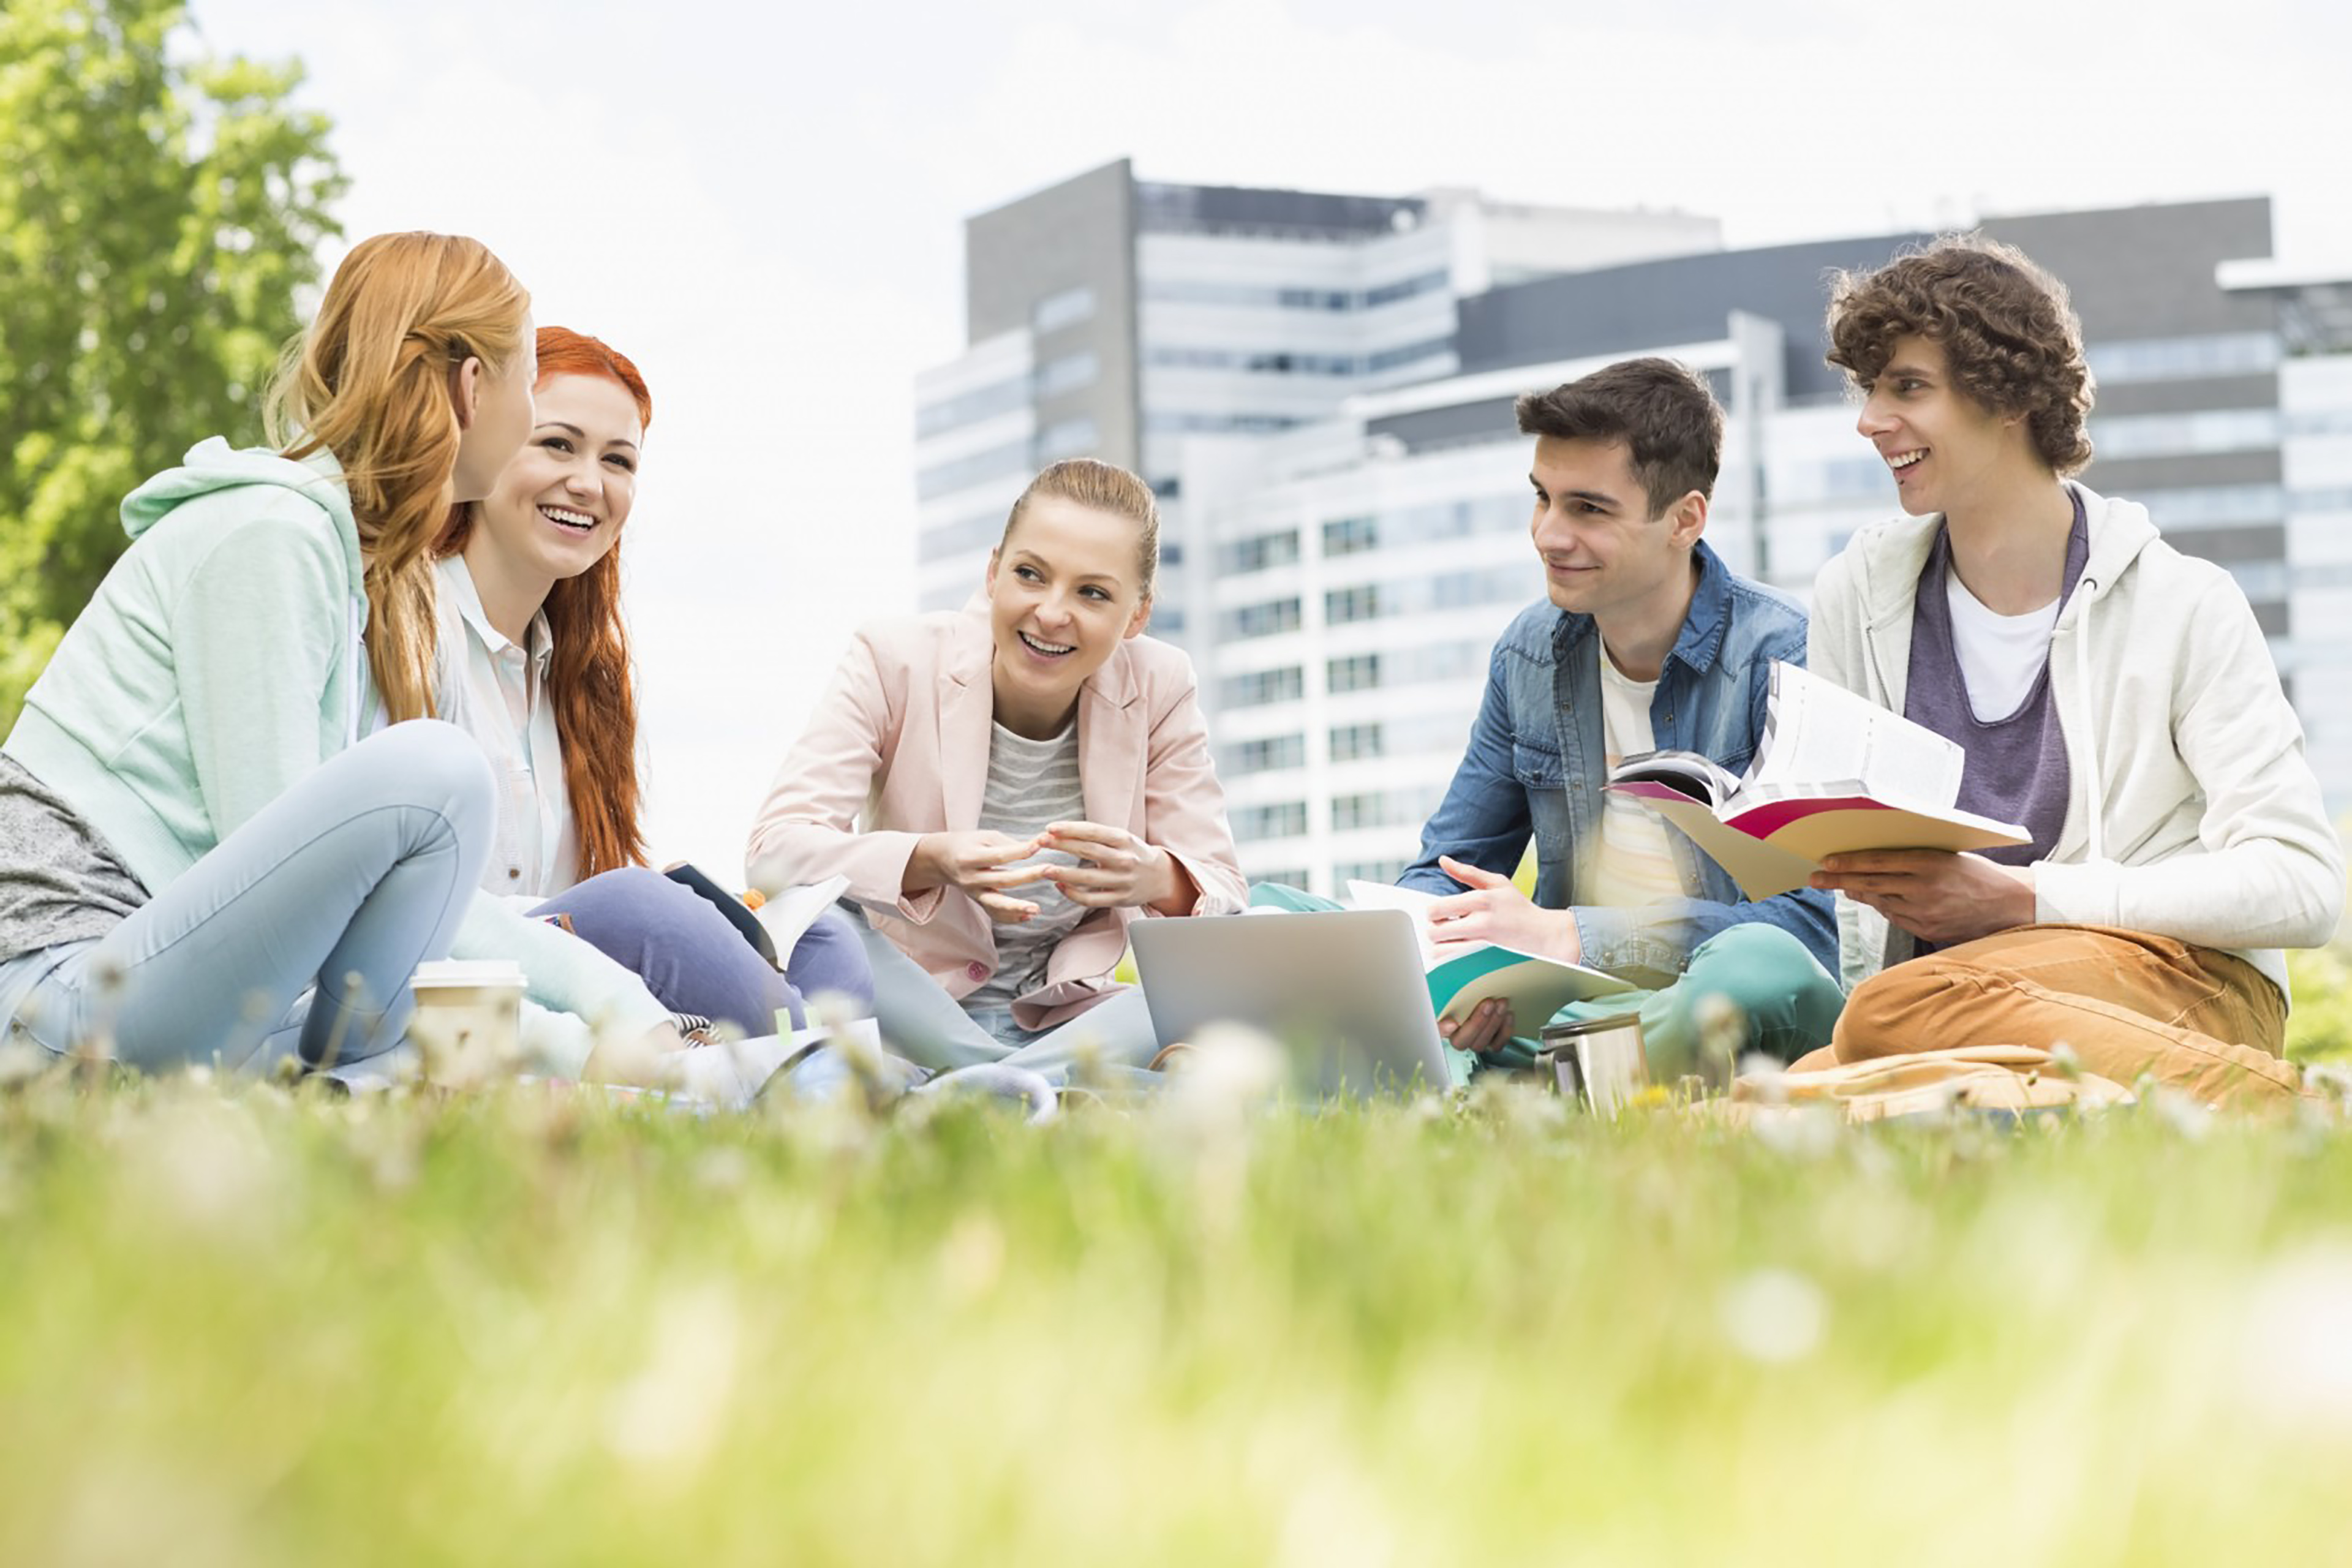 Group of people sitting in grass